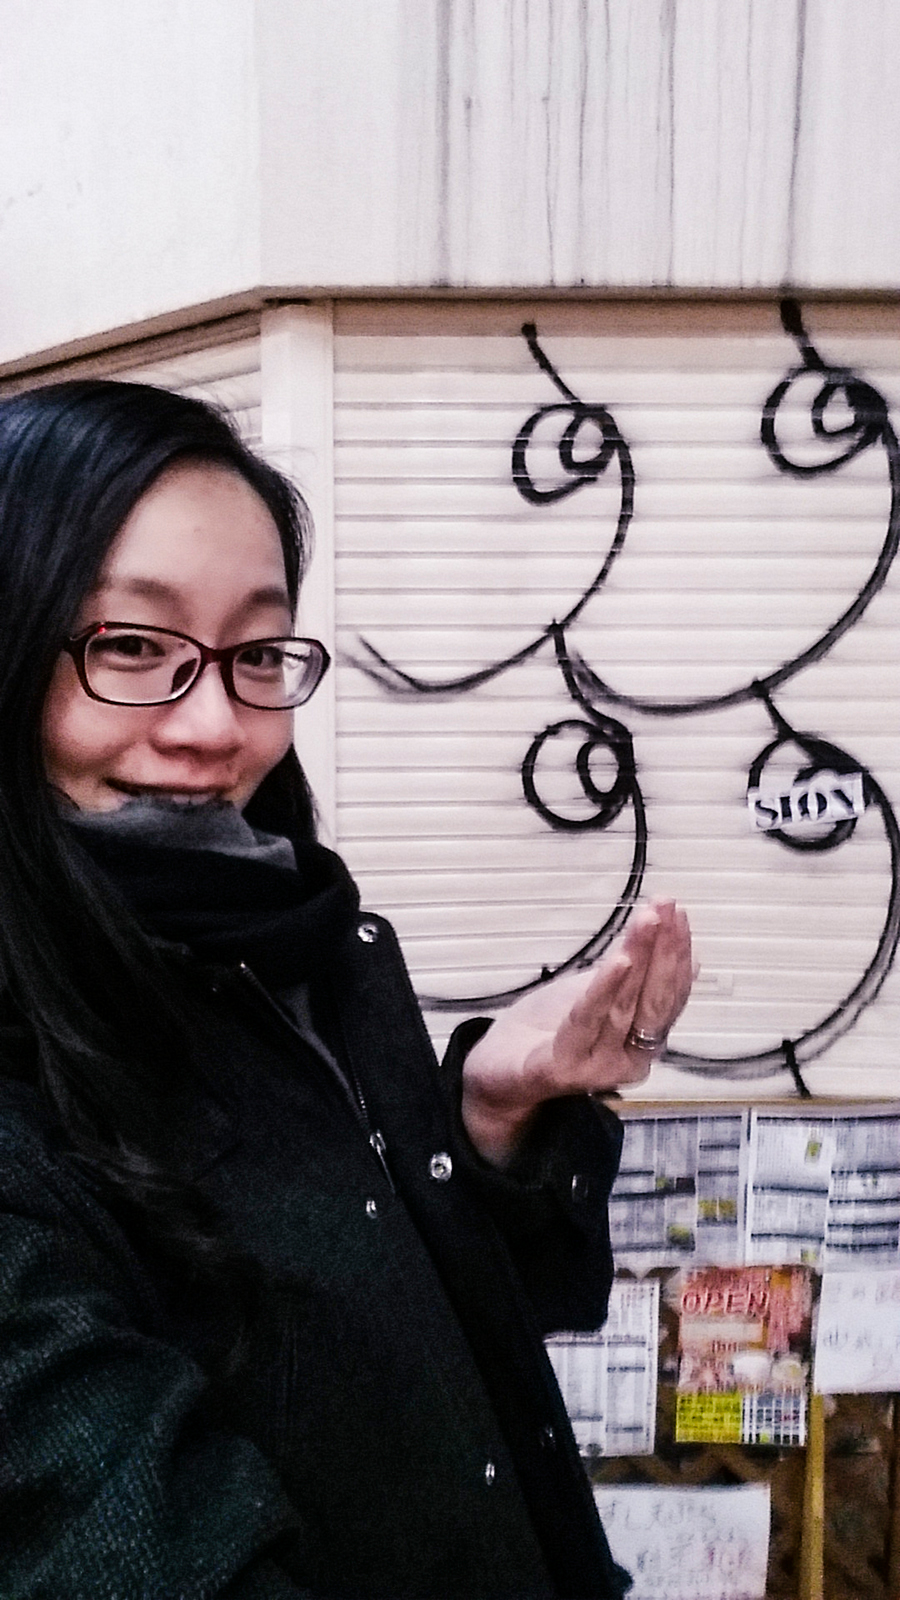 Selfie with a shutter illustrated with boobs in Osaka, Japan.